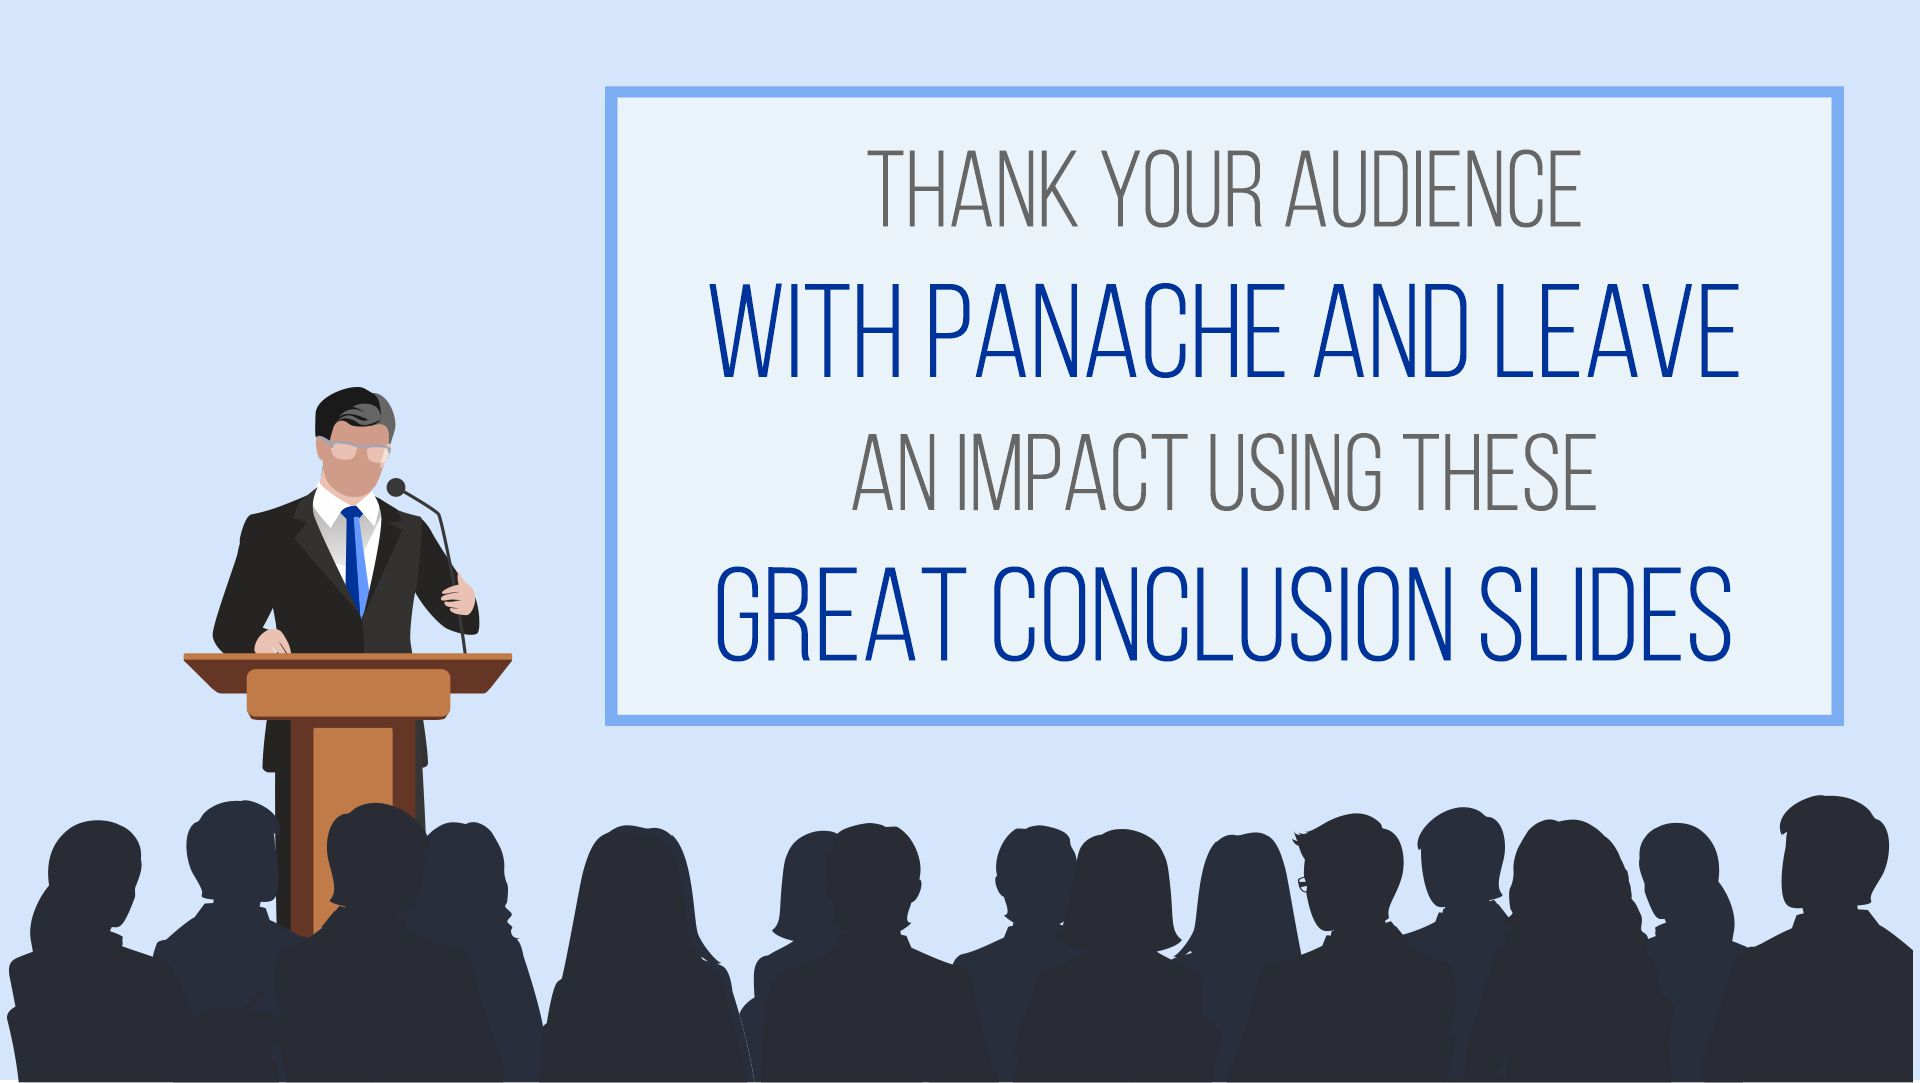 Thank your audience with panache and leave an impact using these great thank you slides